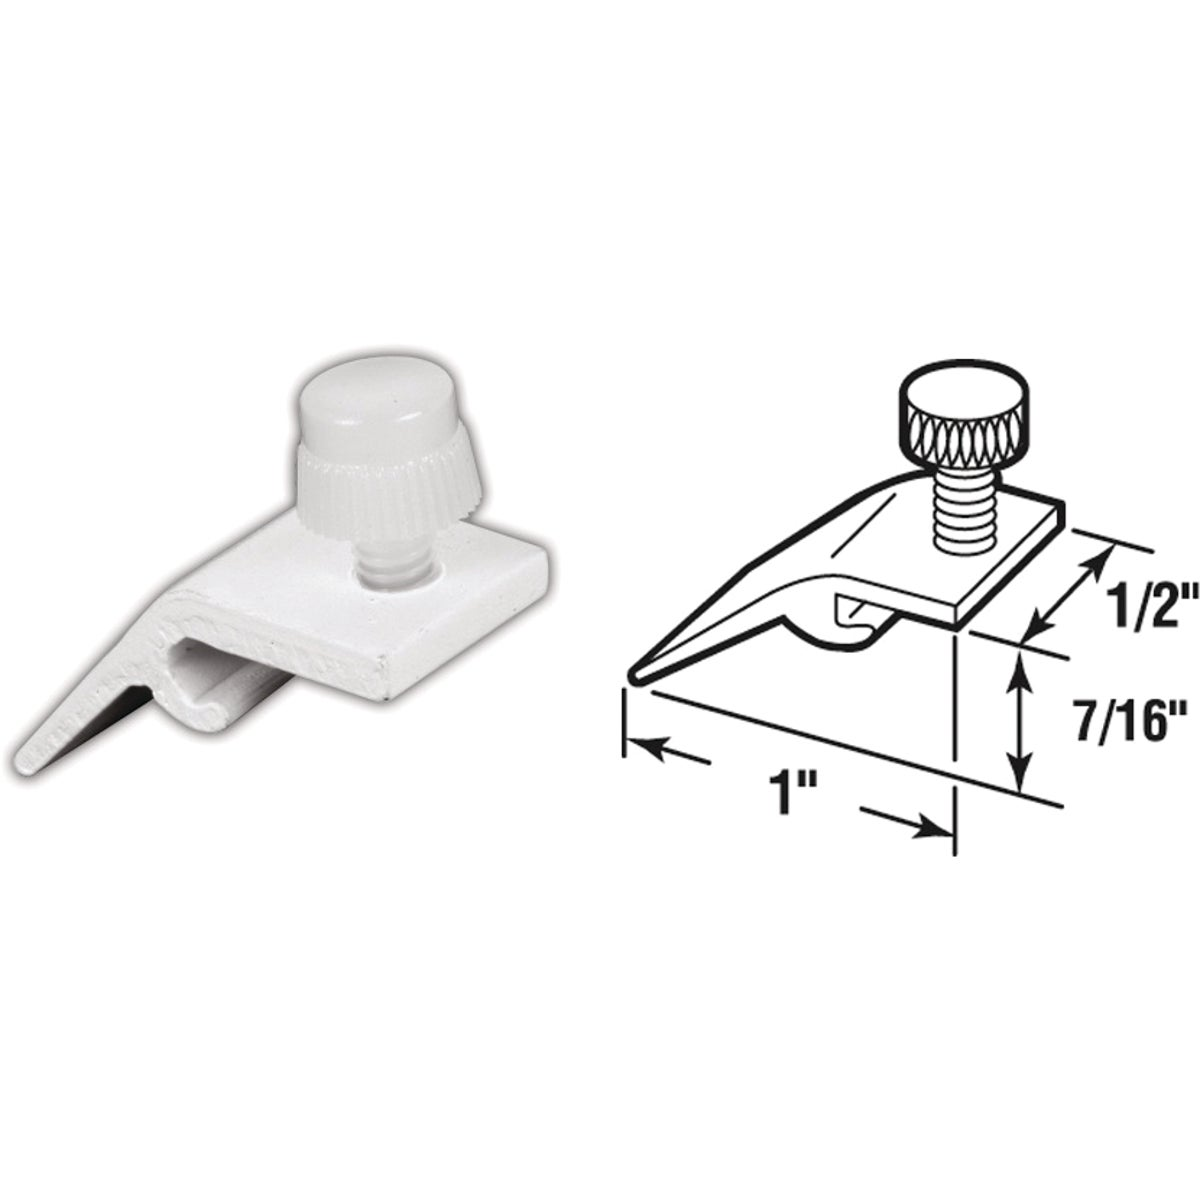 STORM WINDOW PANEL CLIPS - 181059 by Prime Line Products